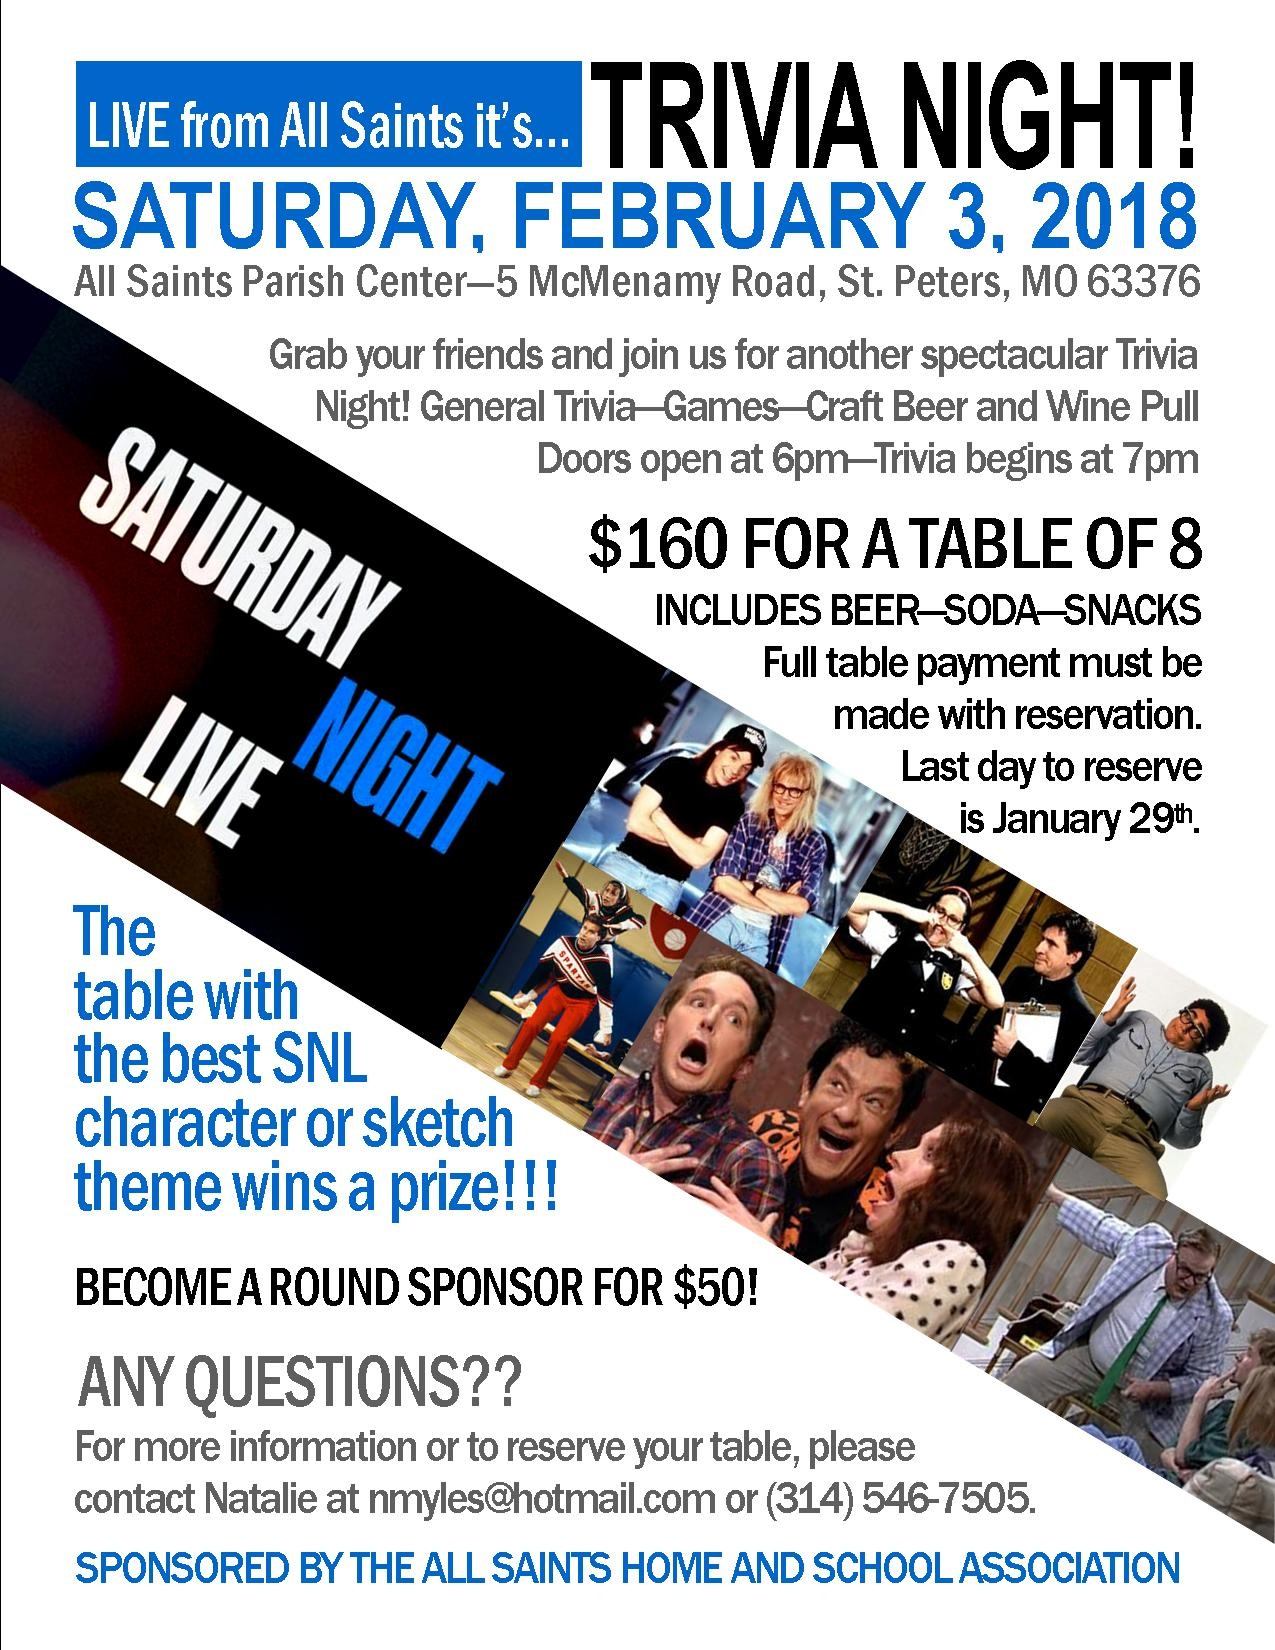 Trivia Night Flyer 2018